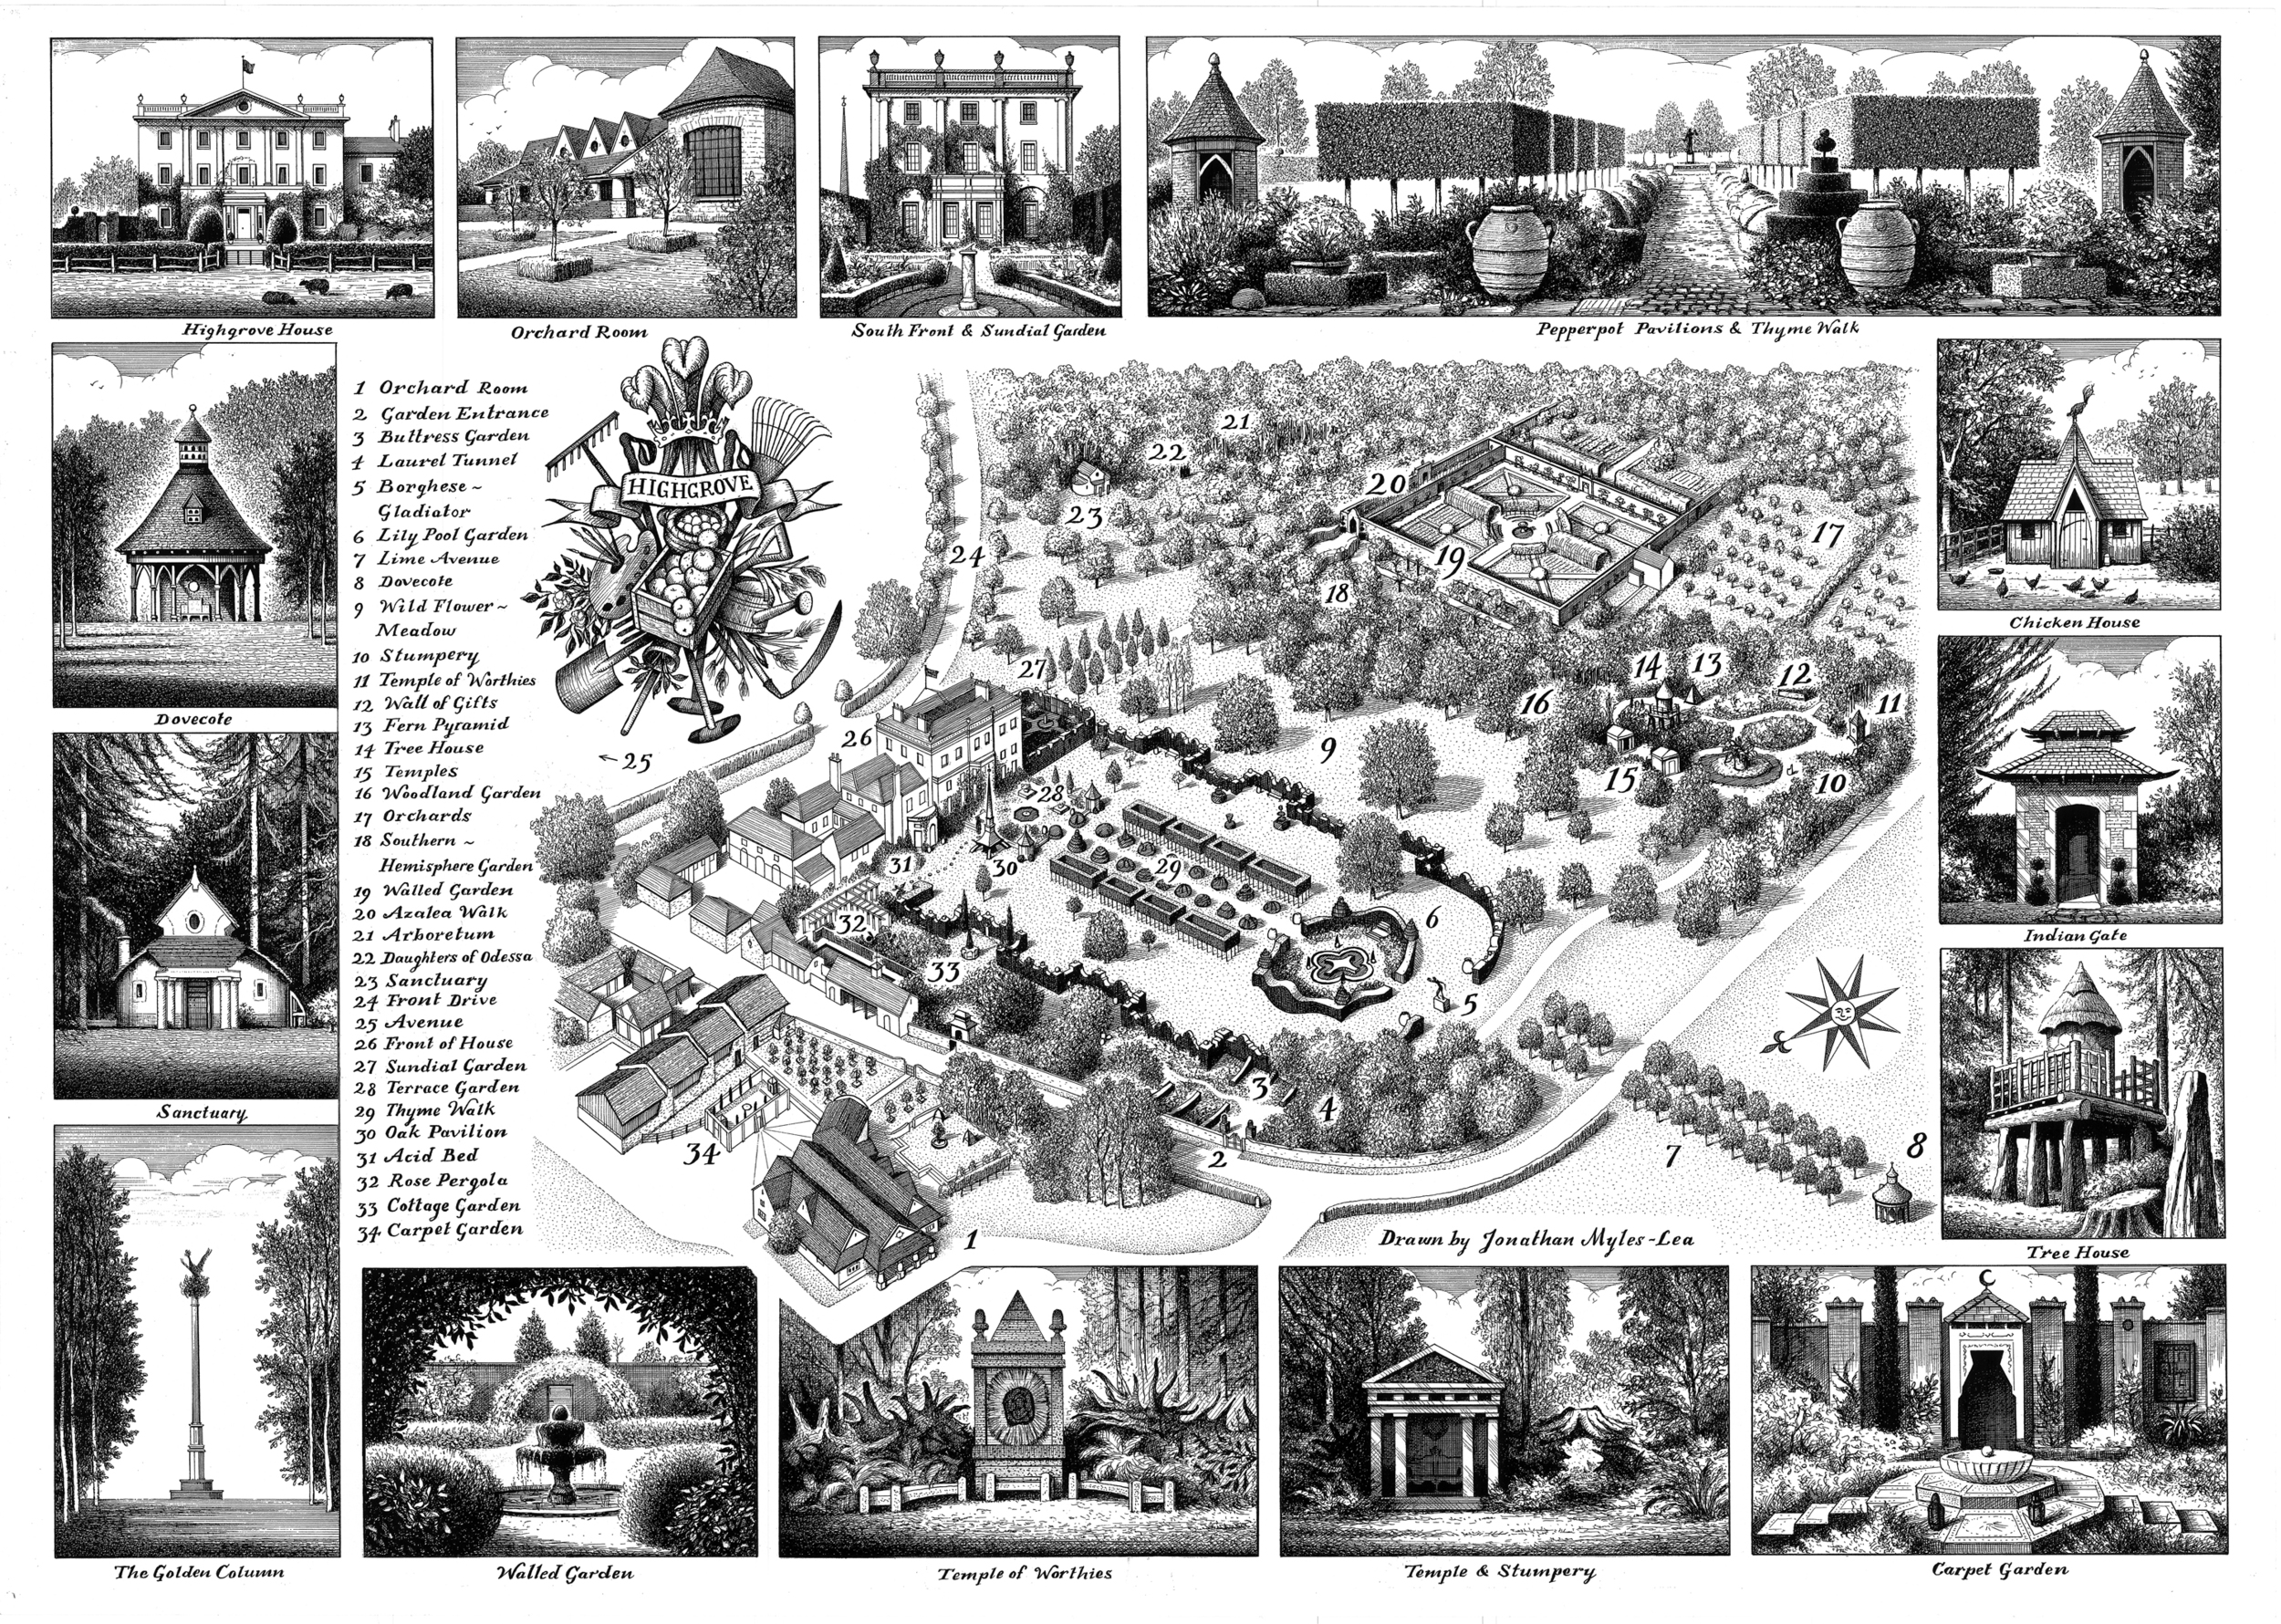 Jonathan Myles-Lea was commissioned to create this meticulous map of the gardens at Highgrove in 2009. The drawing has been used in various publications, including the official visitorguide to the property as well as on the cover of Prince Charles's latest book. Available from the Highgrovewebsite here.